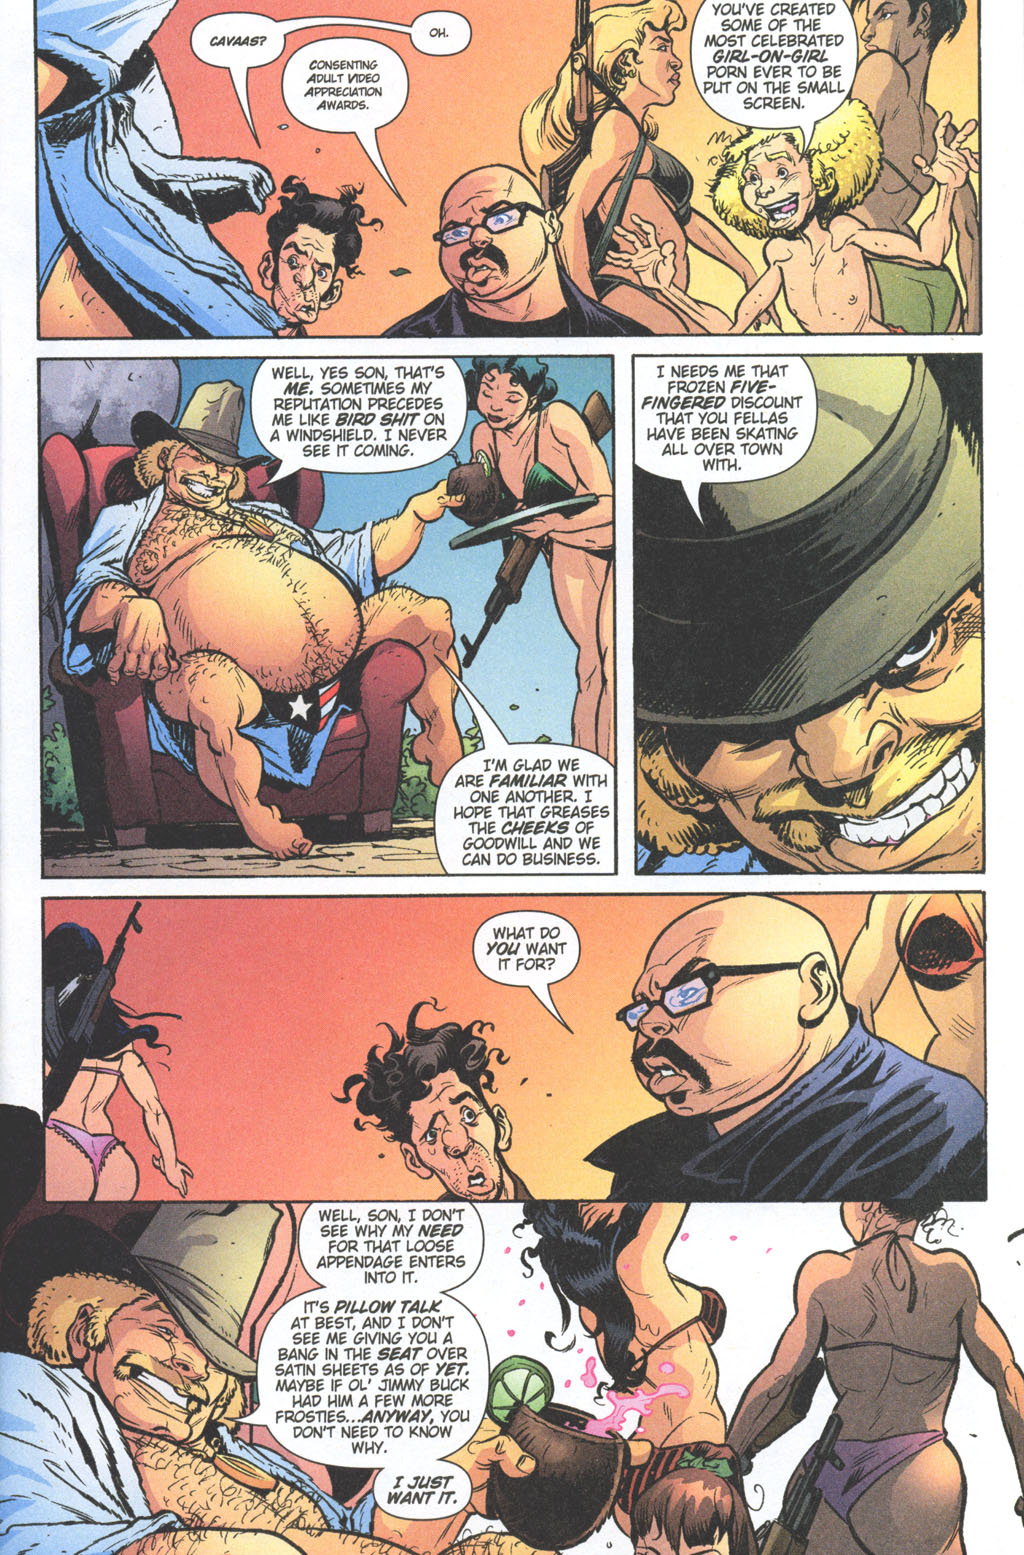 Read online Caper comic -  Issue #11 - 14